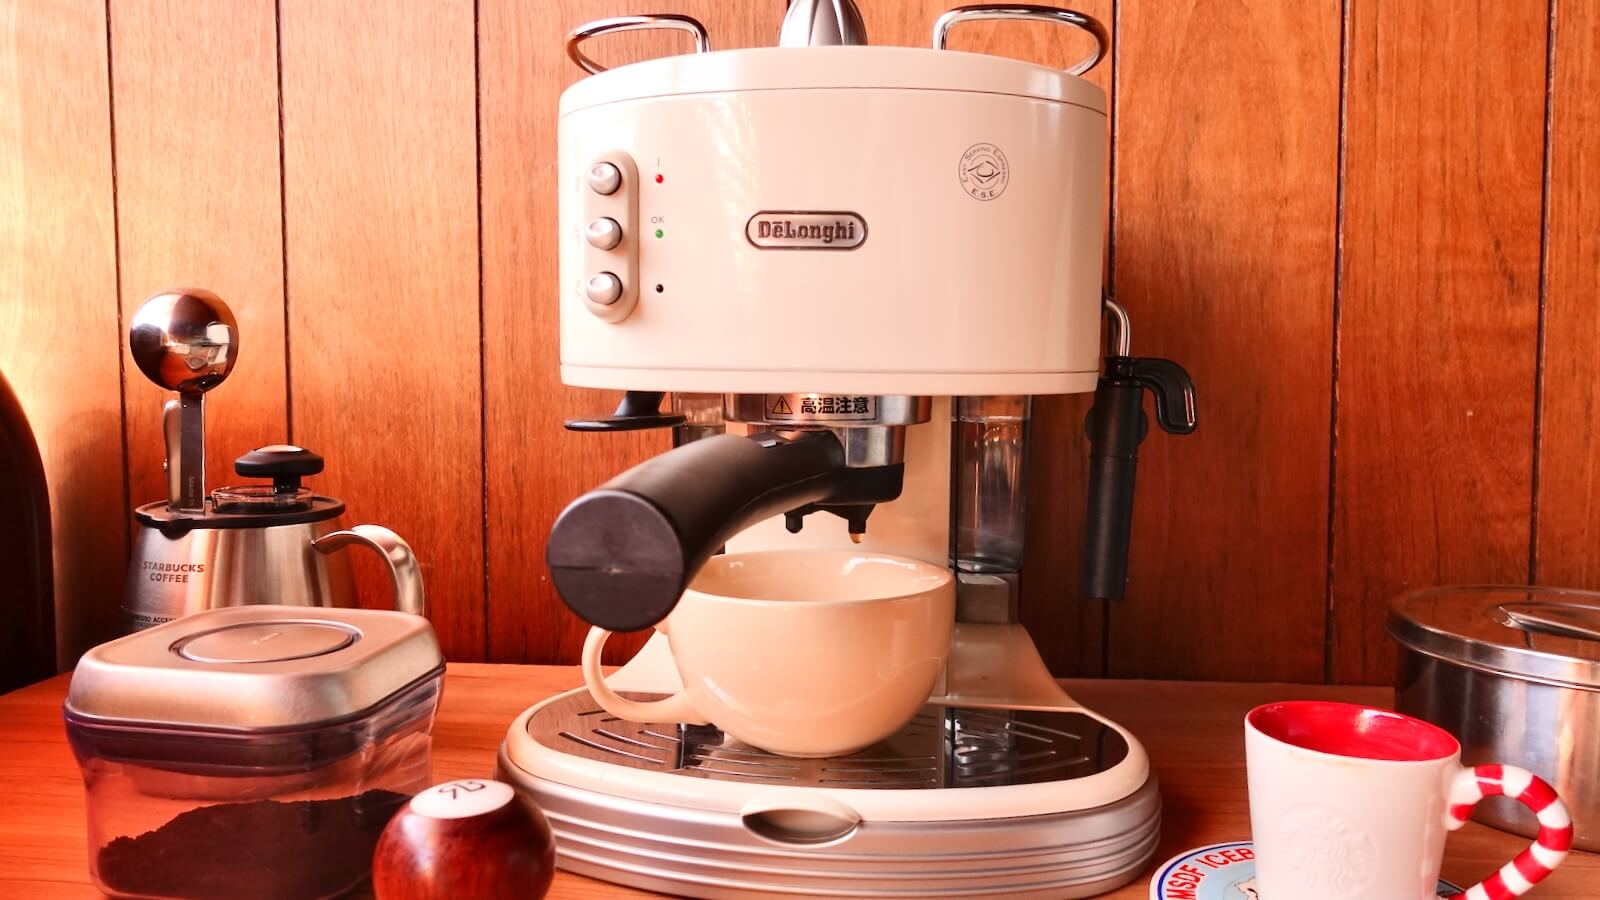 Delonghi Espresso Machine ECM300J Photograph with saucer placed after extraction